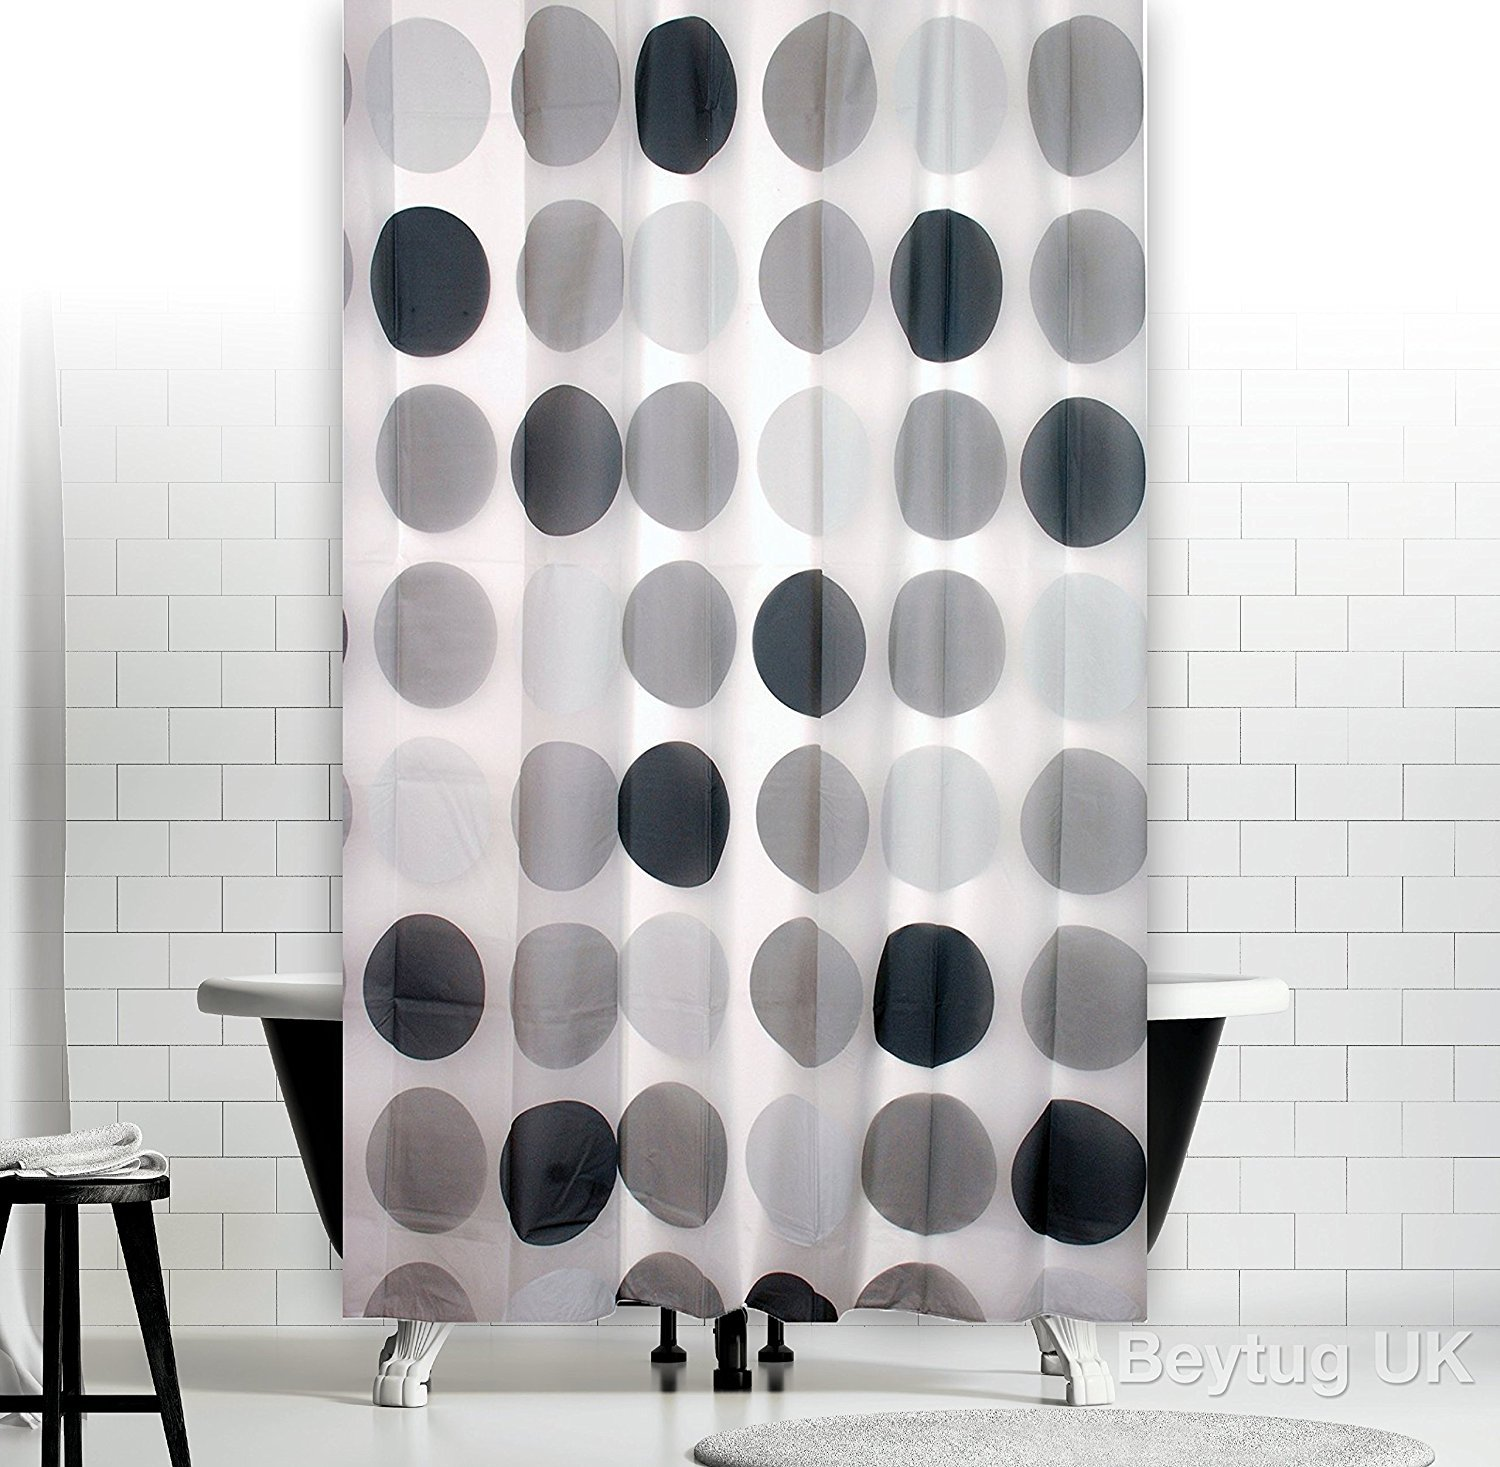 New Modern Bathroom Shower Curtain with Rings 180 x 200 cm Retro ...